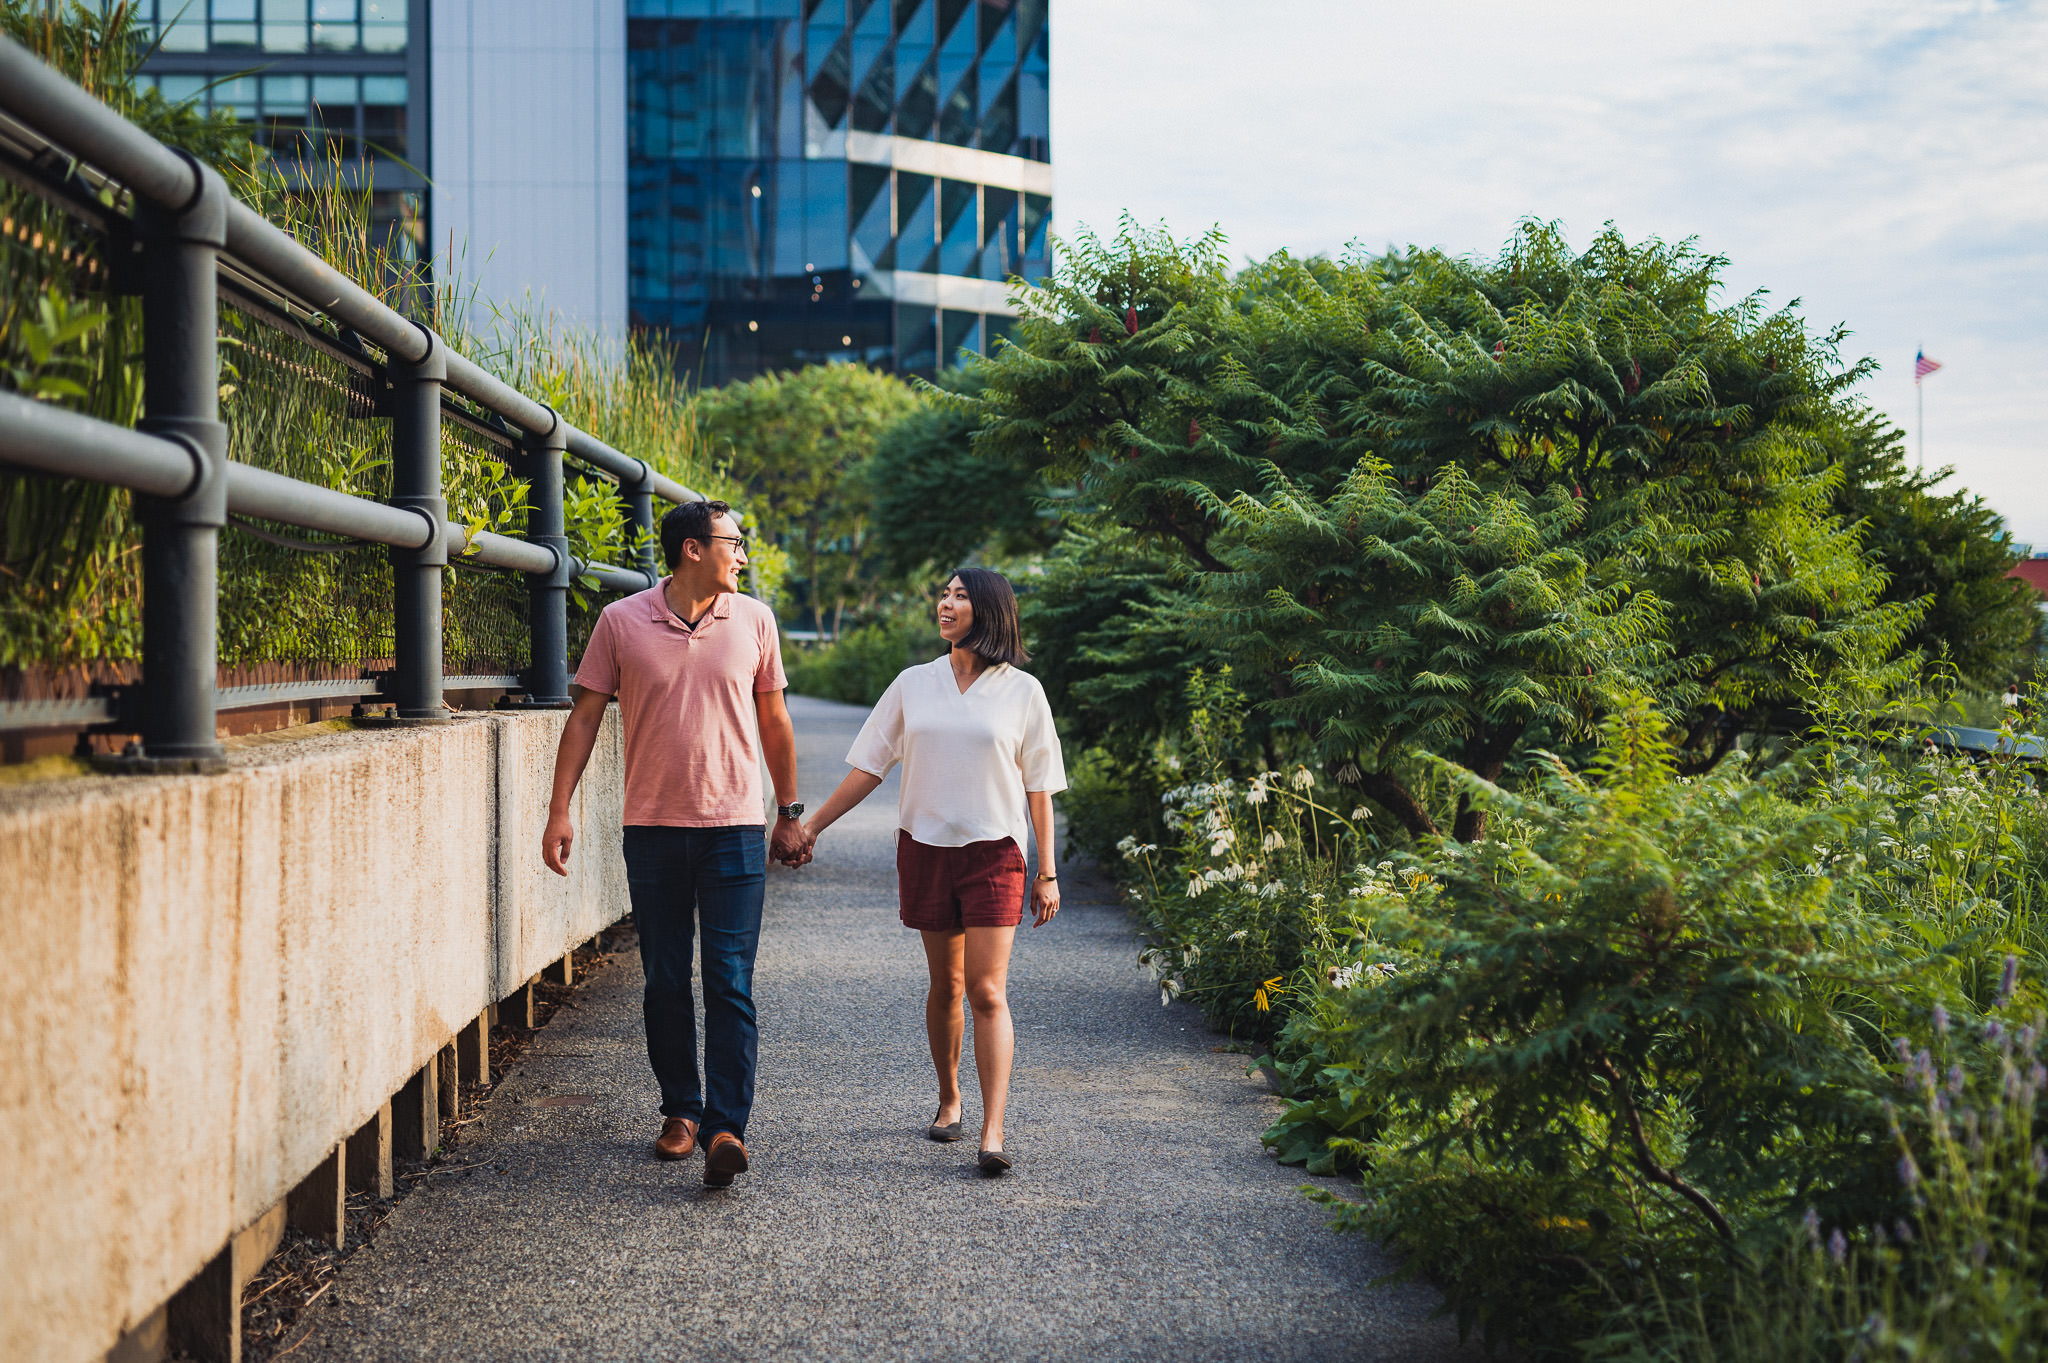 Photographs from Justine and Adrian's engagement session on the High Line in Chelsea, Manhattan. I love taking unique locations like this in New York to stretch myself creatively and try something new.